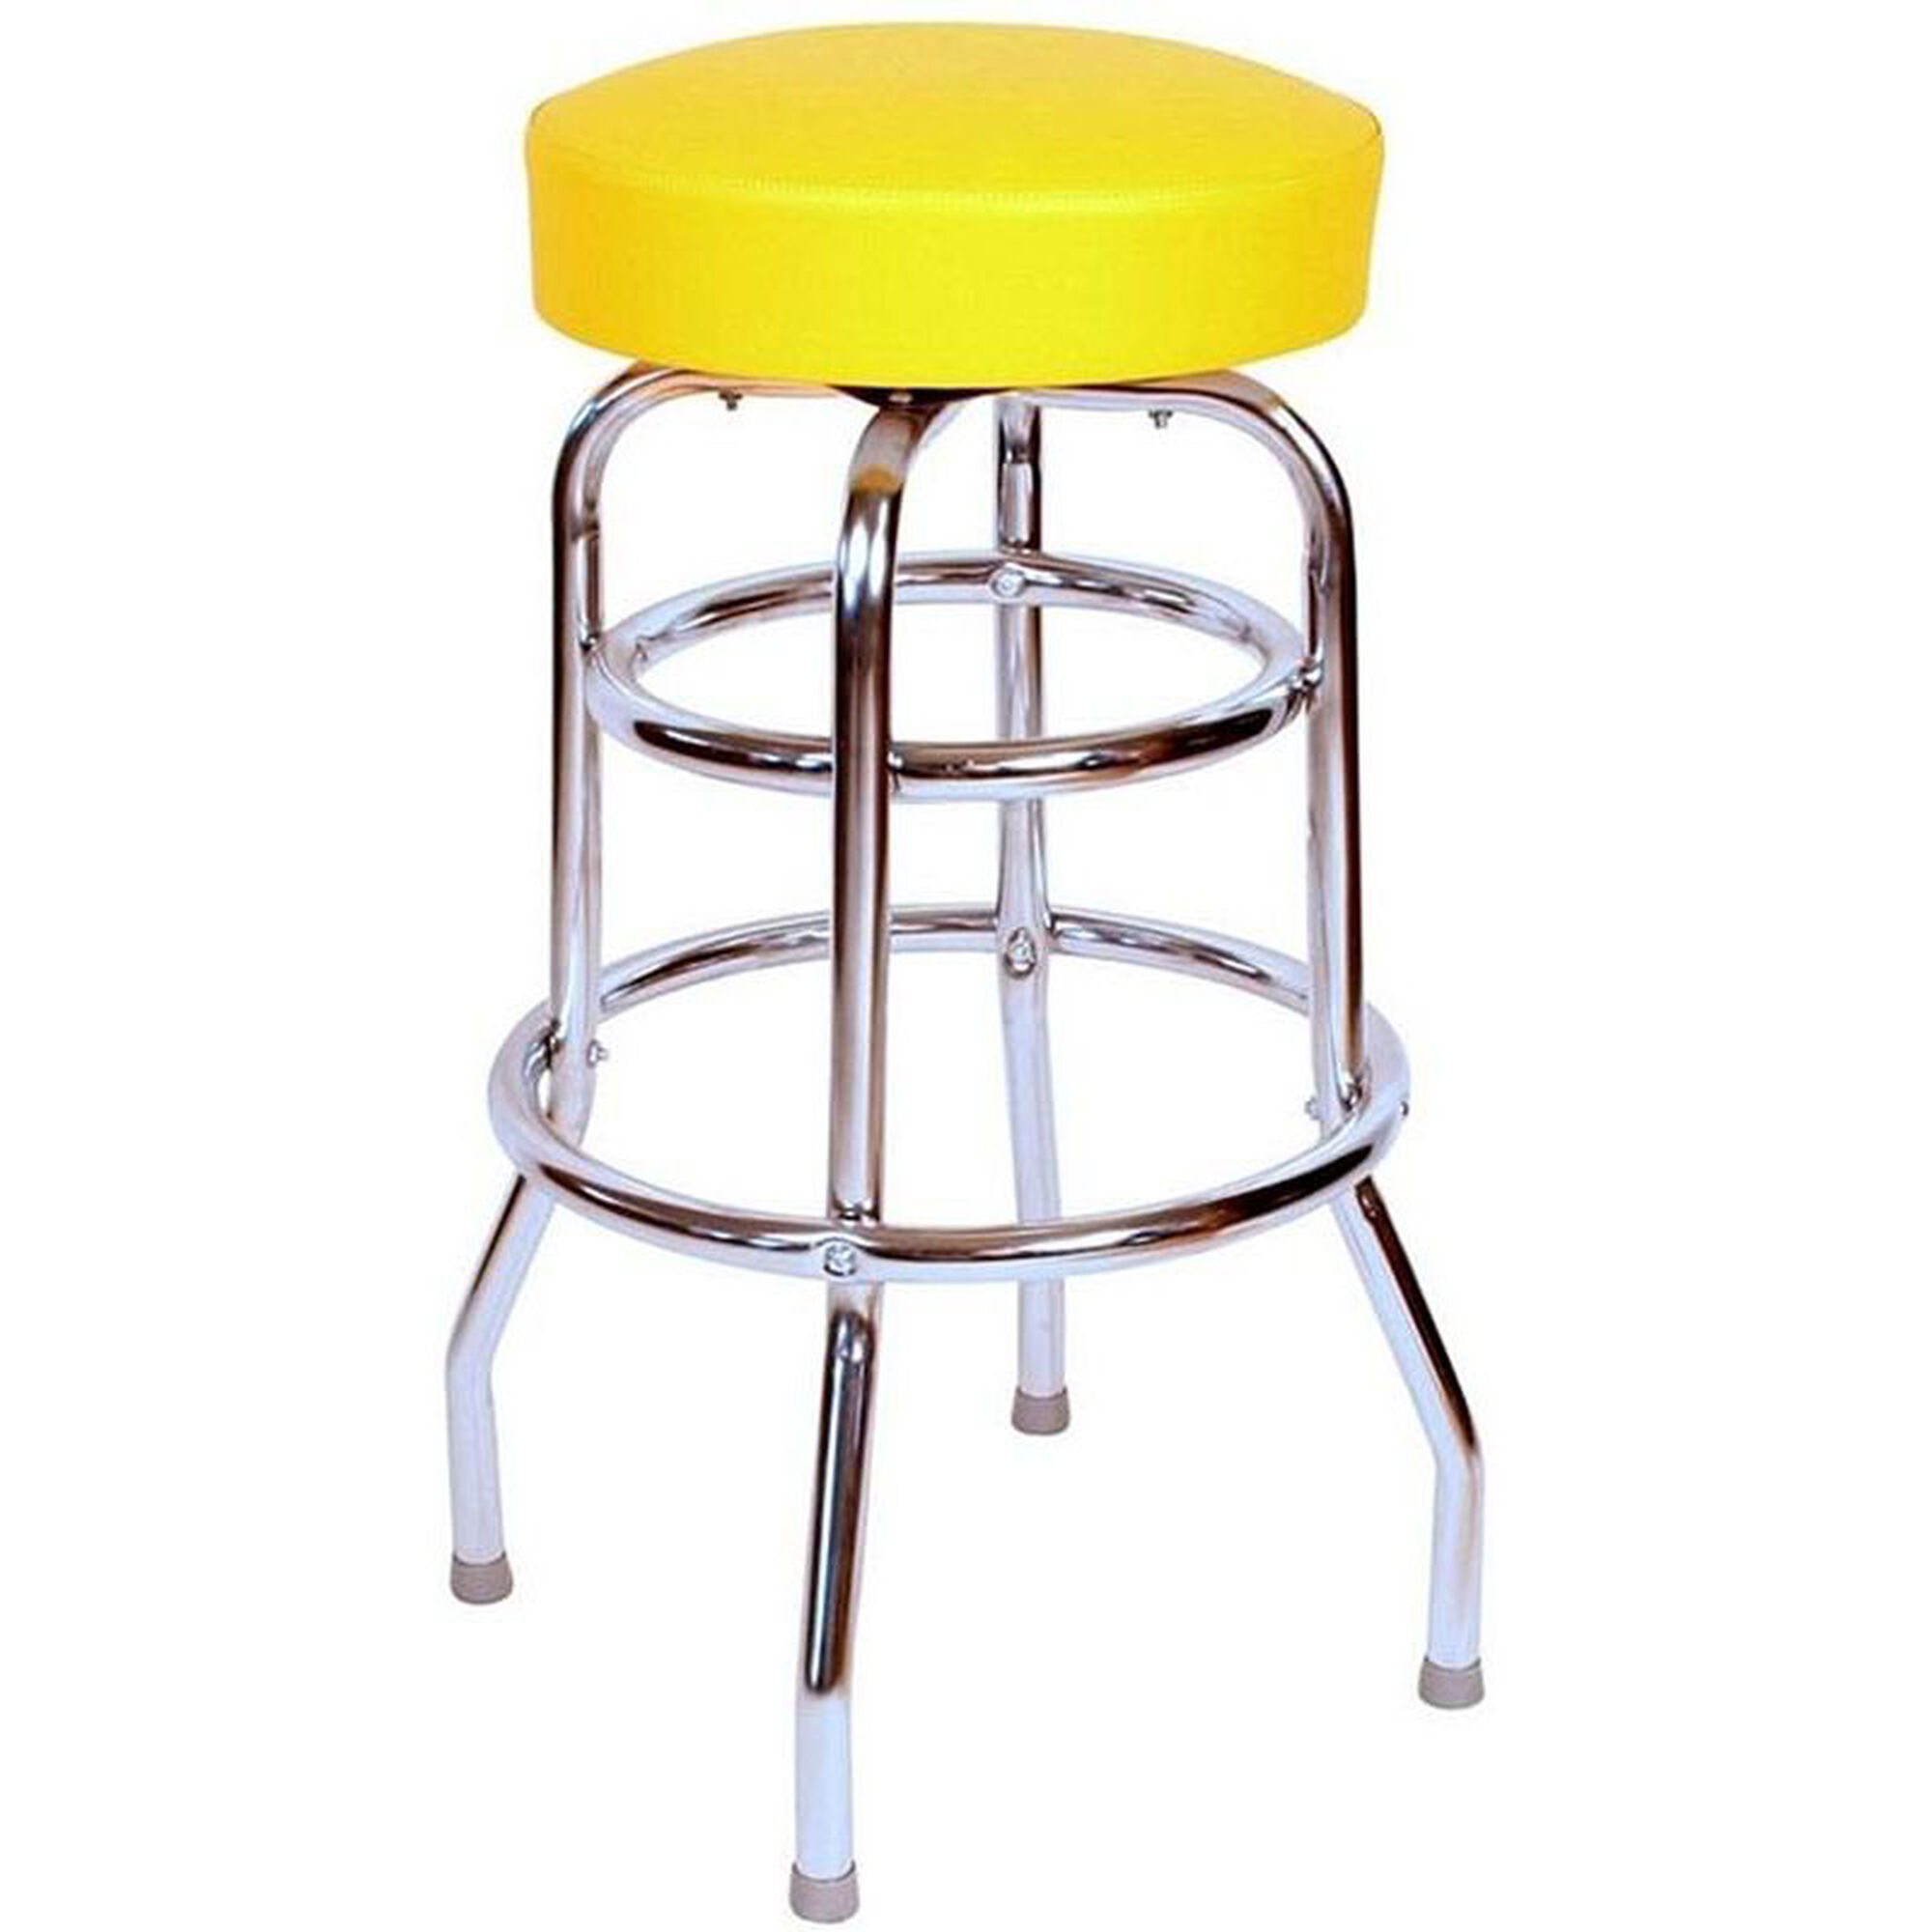 Fantastic 50S Retro Backless 30H Swivel Bar Stool With Double Ring Chrome Frame And Padded Seat Yellow Vinyl Inzonedesignstudio Interior Chair Design Inzonedesignstudiocom